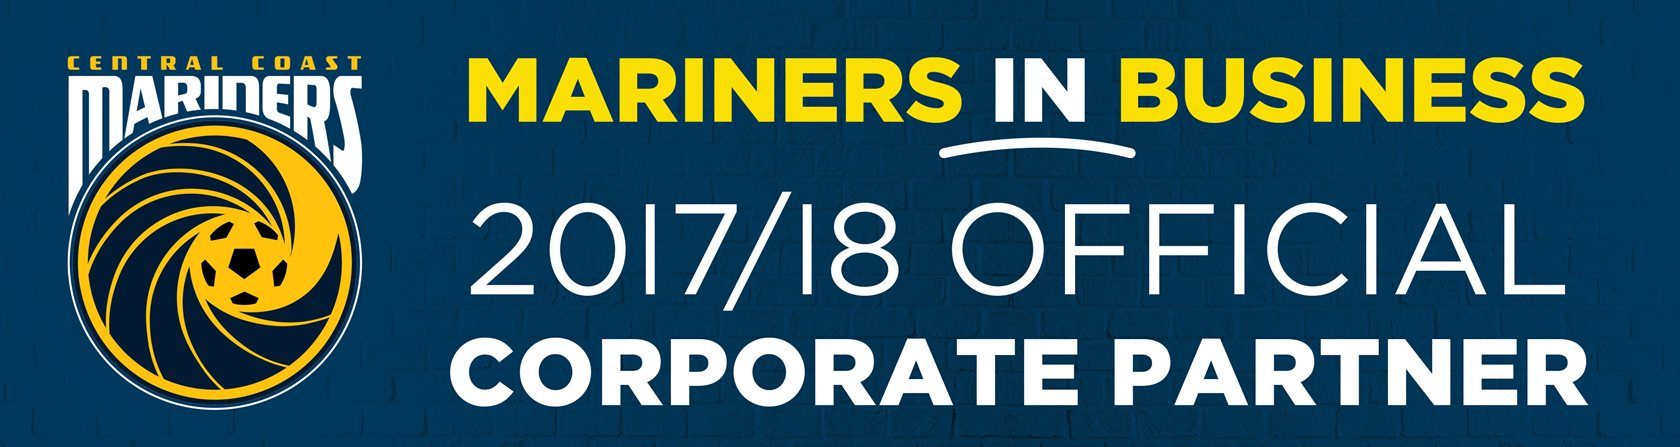 Corporate Partners of Central Coast Mariners